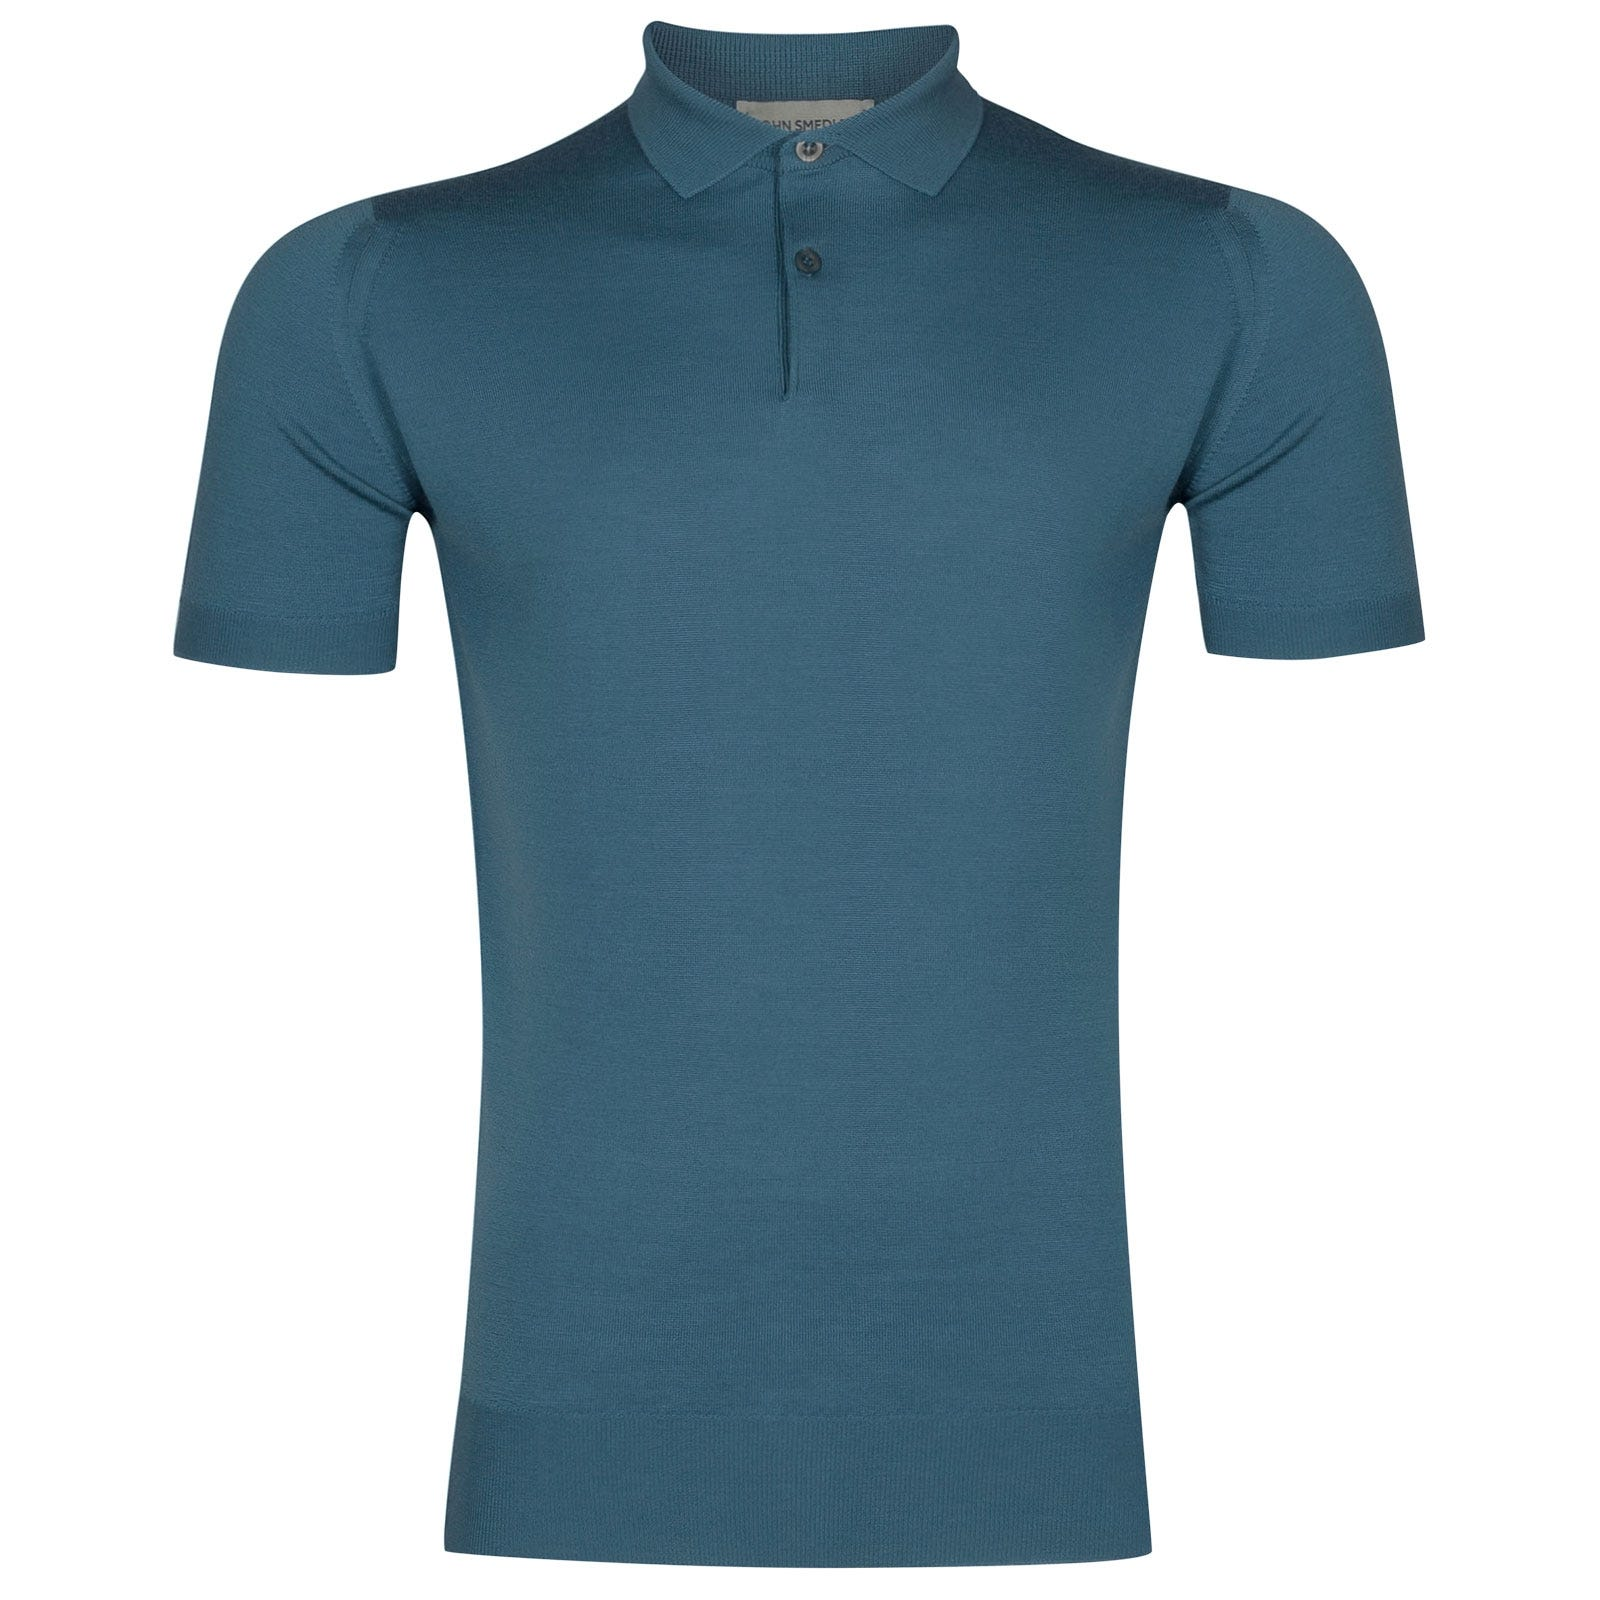 John Smedley Payton Merino Wool Shirt in Bias Blue-XXL